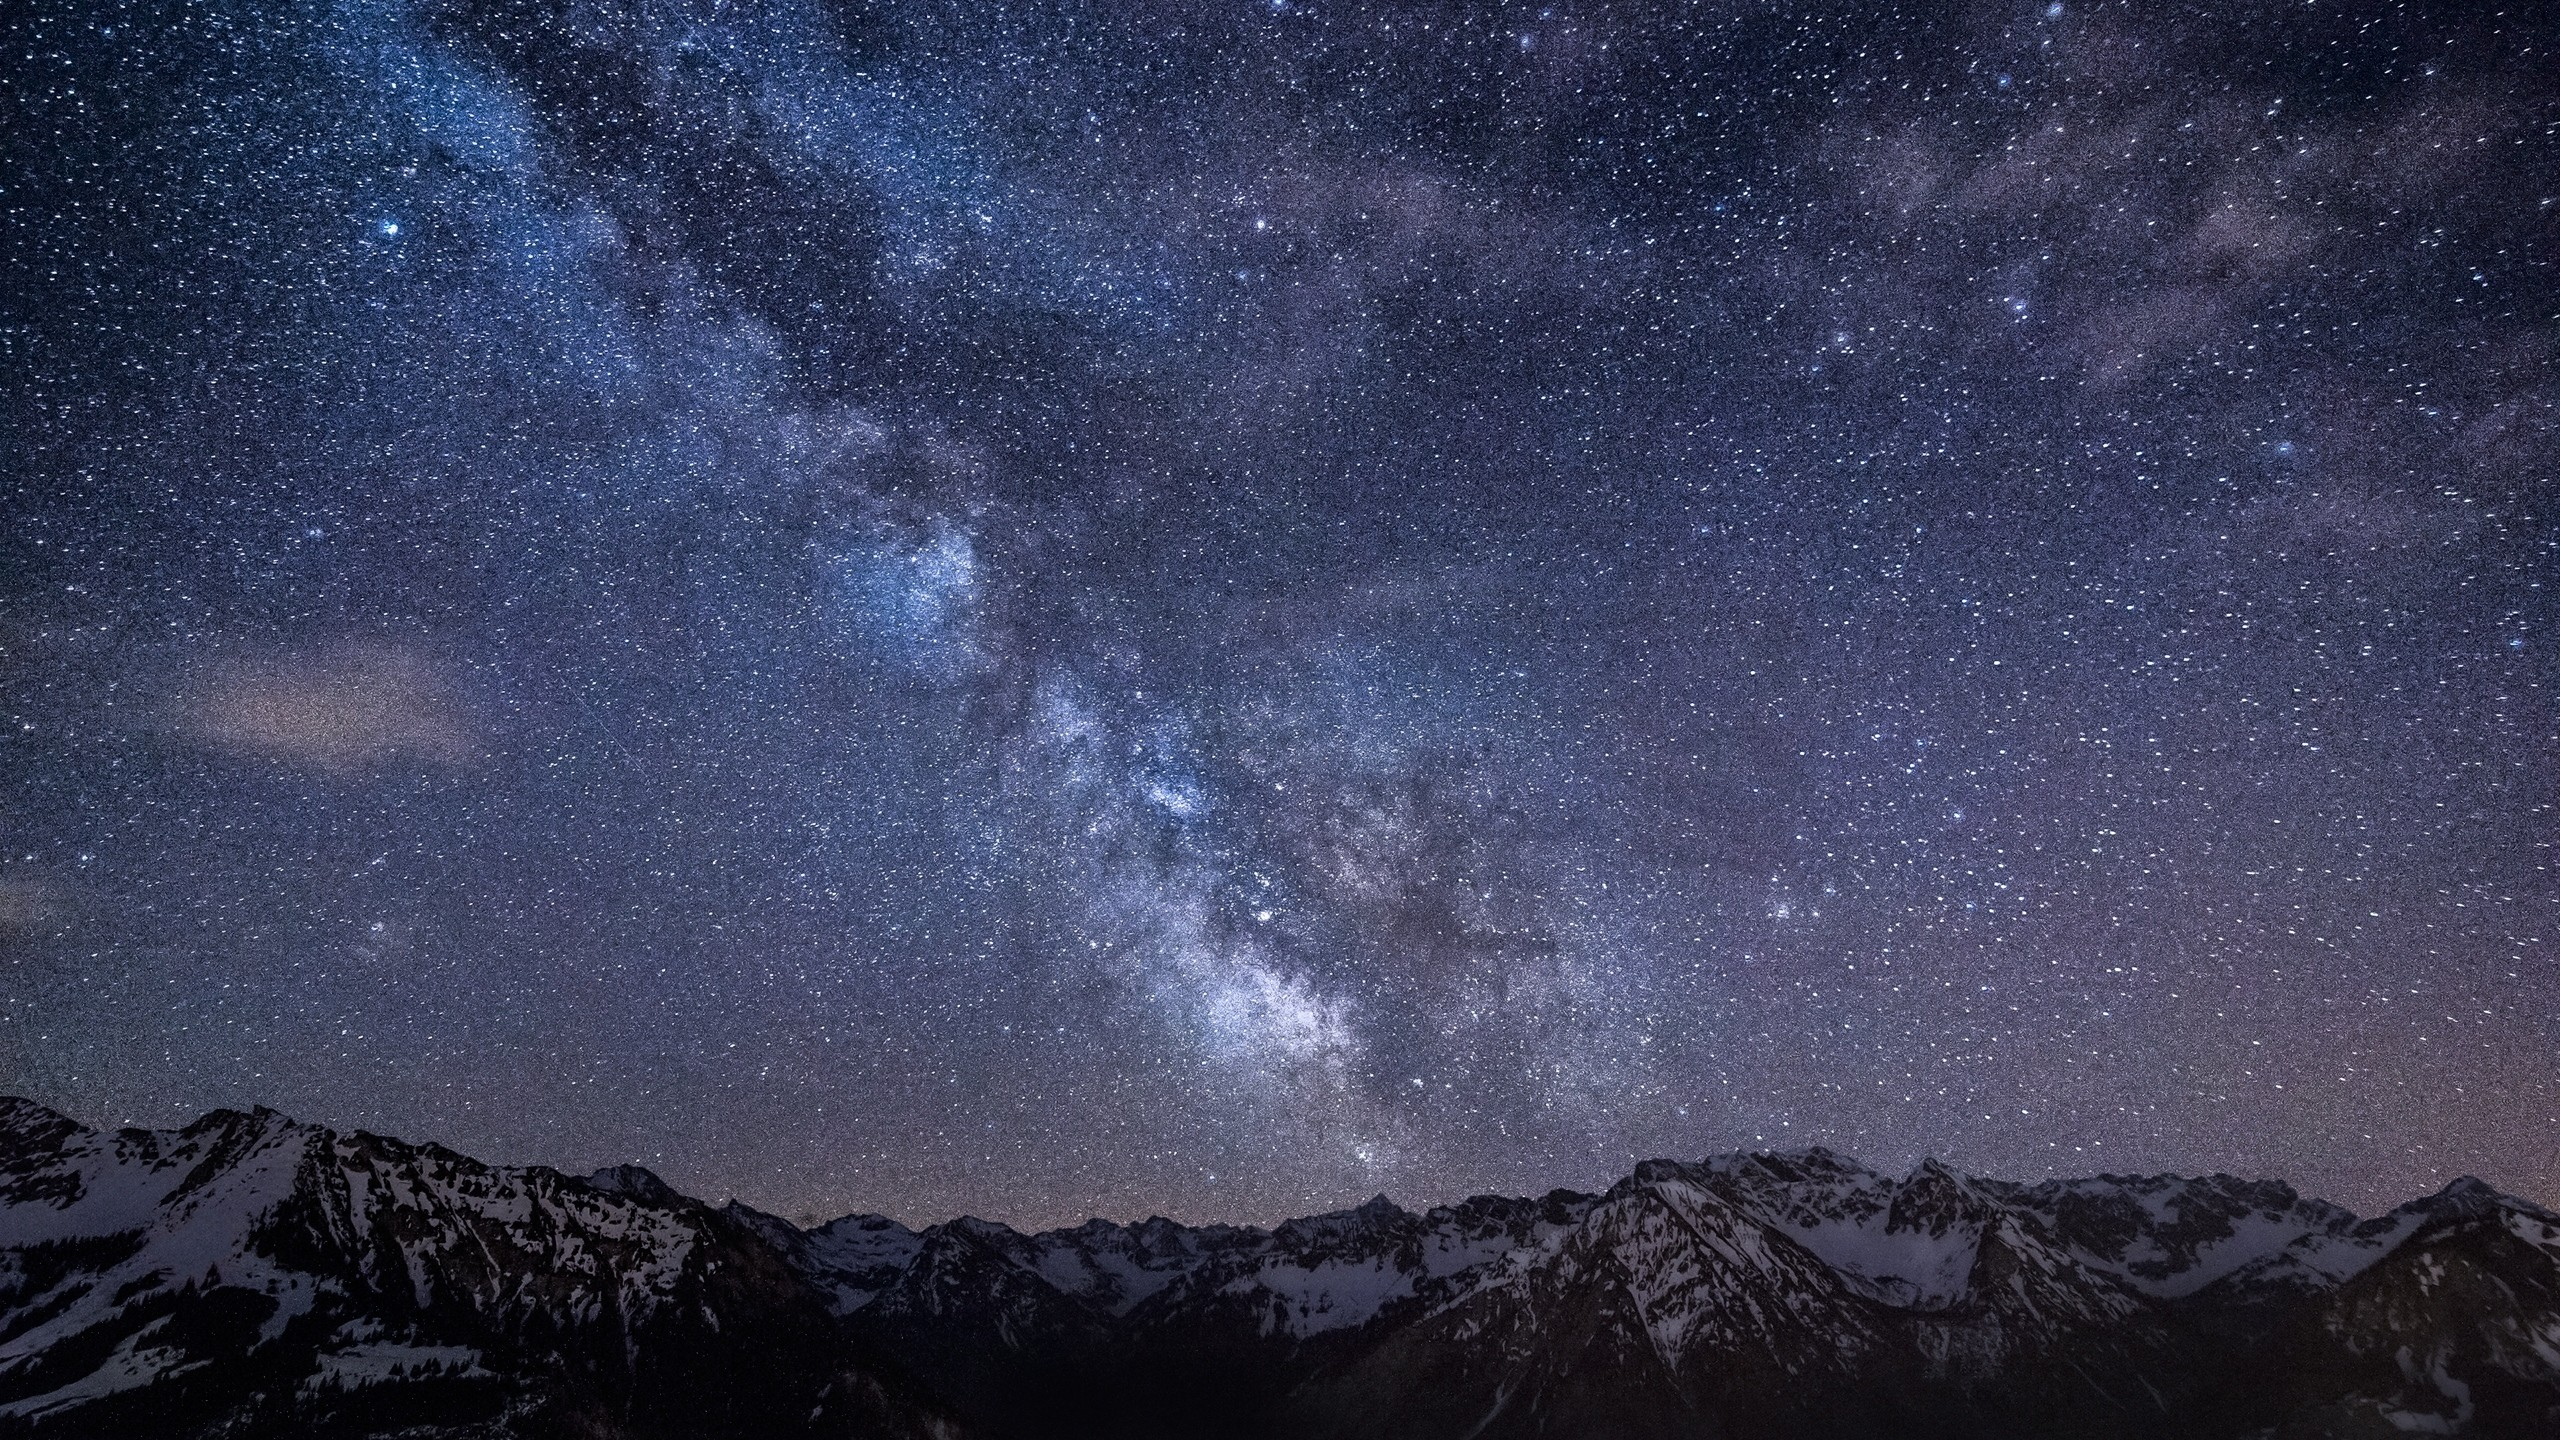 2560x1440 Preview wallpaper milky way, stars, mountains, night, germany, bavaria, sky